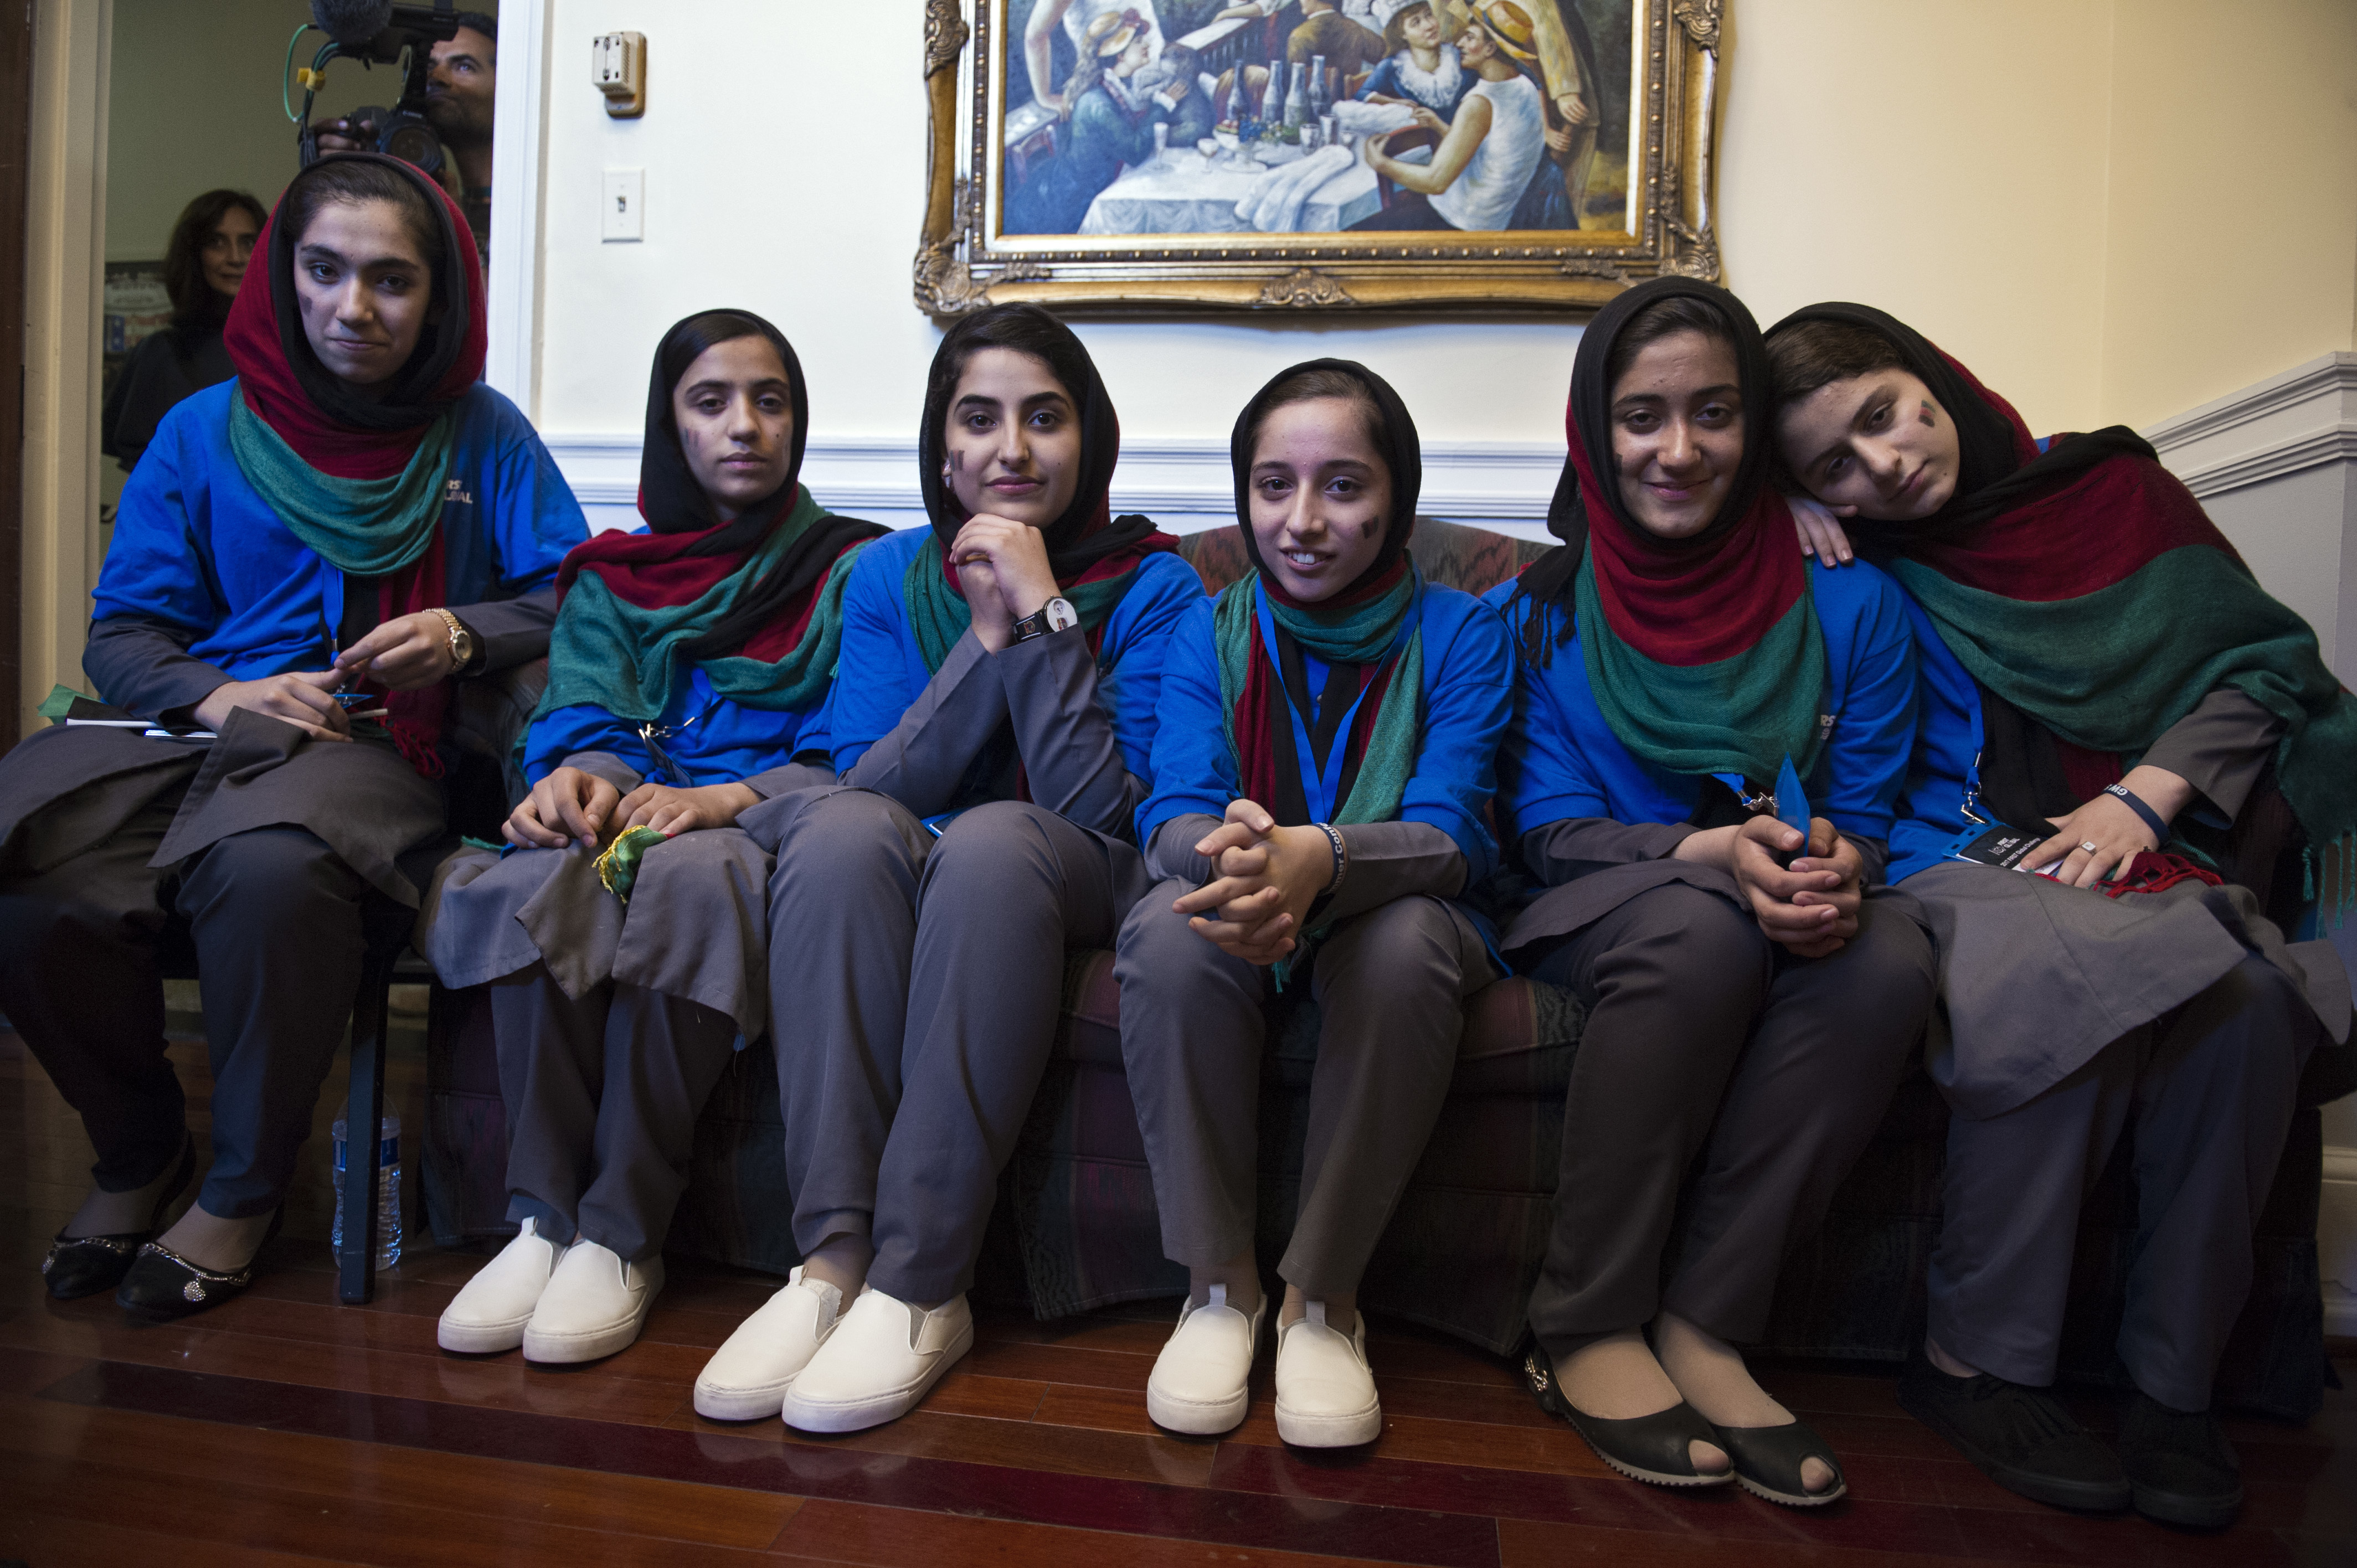 Afghanistan's FIRST Global Challenge team meet with reporters following the opening ceremony in Washington, Sunday, July 16, 2017. Twice rejected for U.S. visas, the all-girls robotics team arrived in Washington on Saturday and will compete against entrants from more than 150 countries in the three-day high school competition. It's the first annual robotics competition designed to encourage youths to pursue careers in math and science. (AP Photo/Cliff Owen)